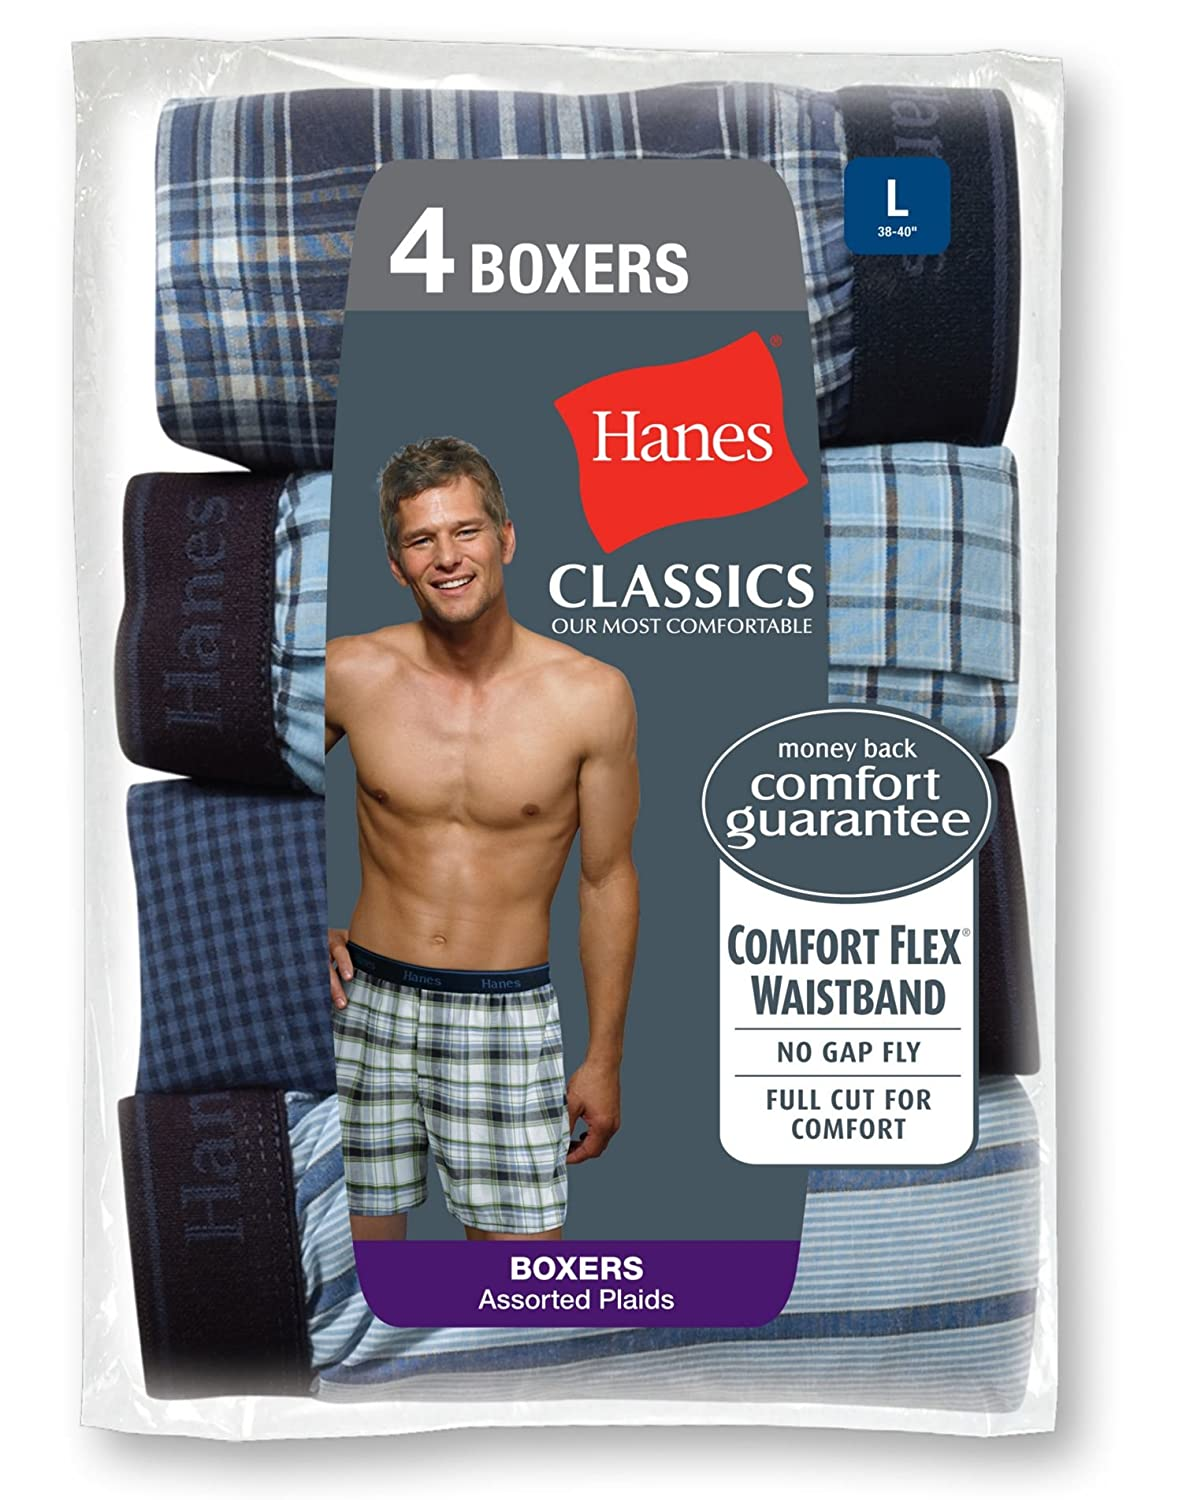 all-day comfort. Classics also feature a premium waistband for plush M-Black//Grey Assortment Made with super soft premium cotton Classics Boxers Hanes Classics is our most comfortable